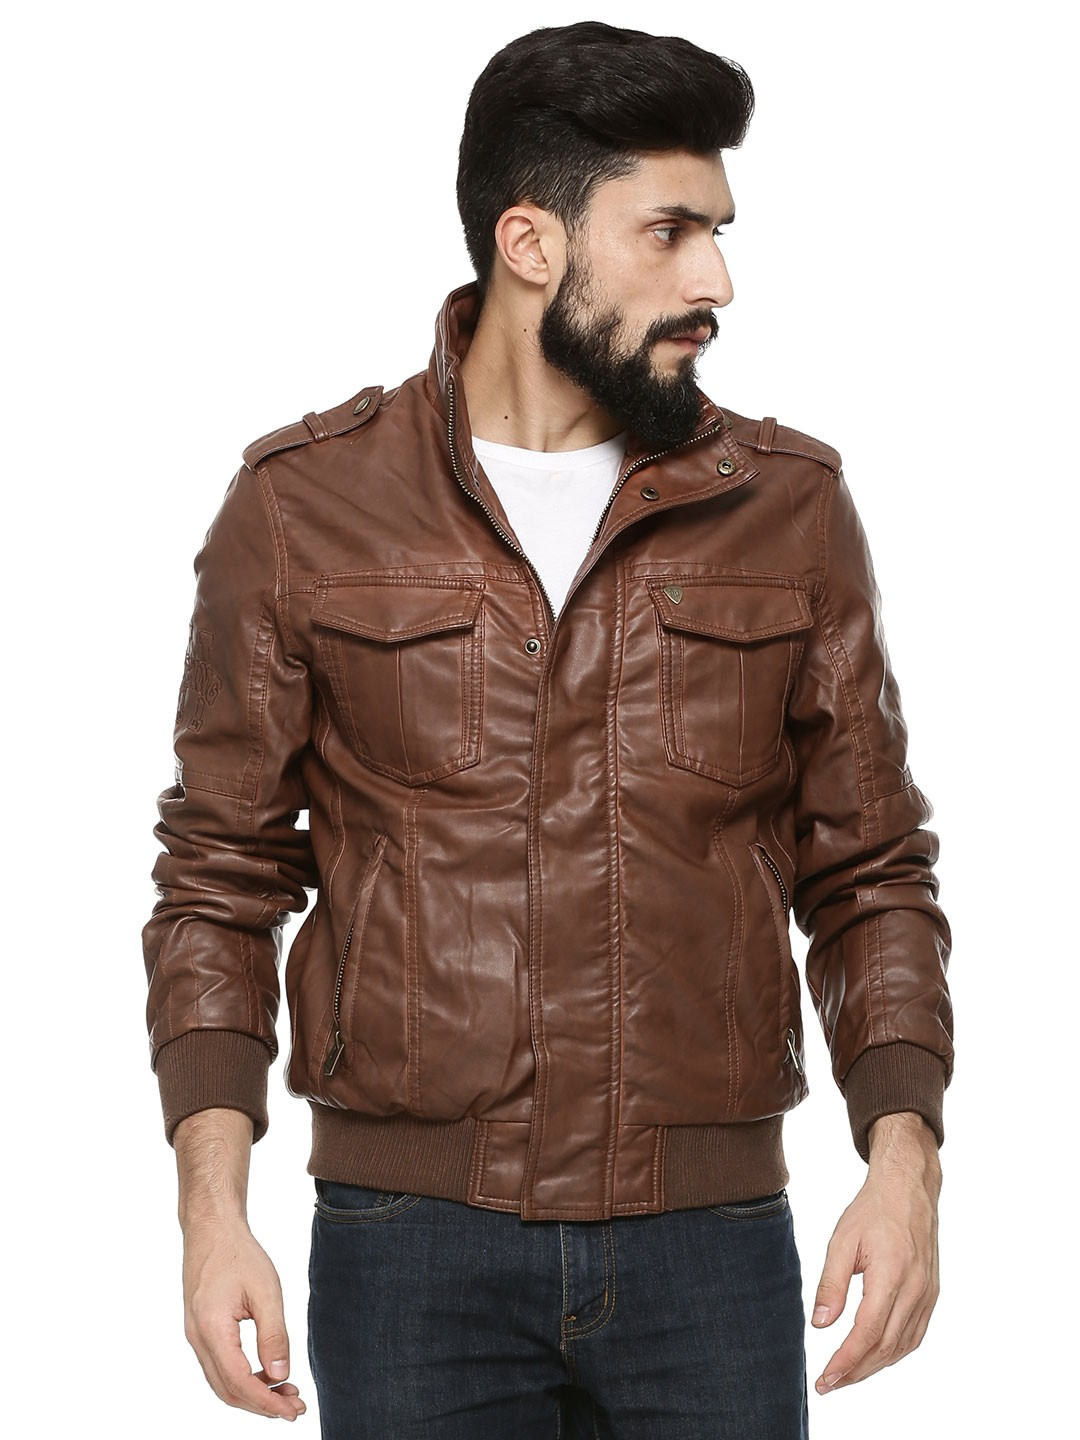 Buy Being Human Brown Faux Leather Jacket With Shoulder